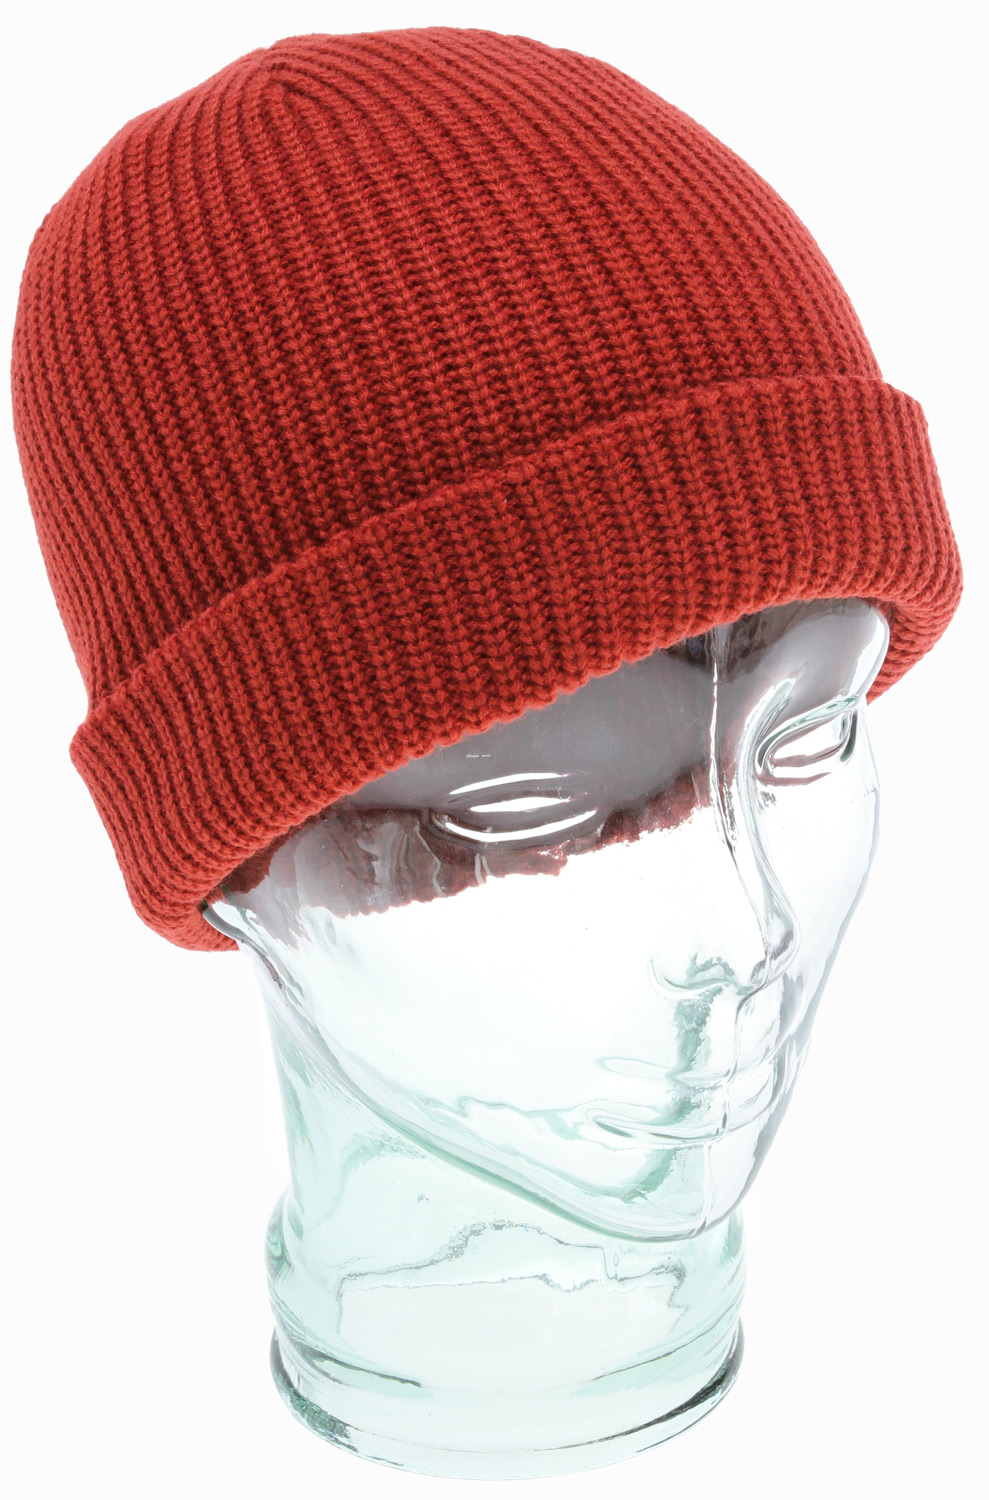 Surf Key Features of the Volcom Full Stone Cuff Beanie:  2 color embroidery  Yarn gauge = 6  100% Acrylic - $10.95